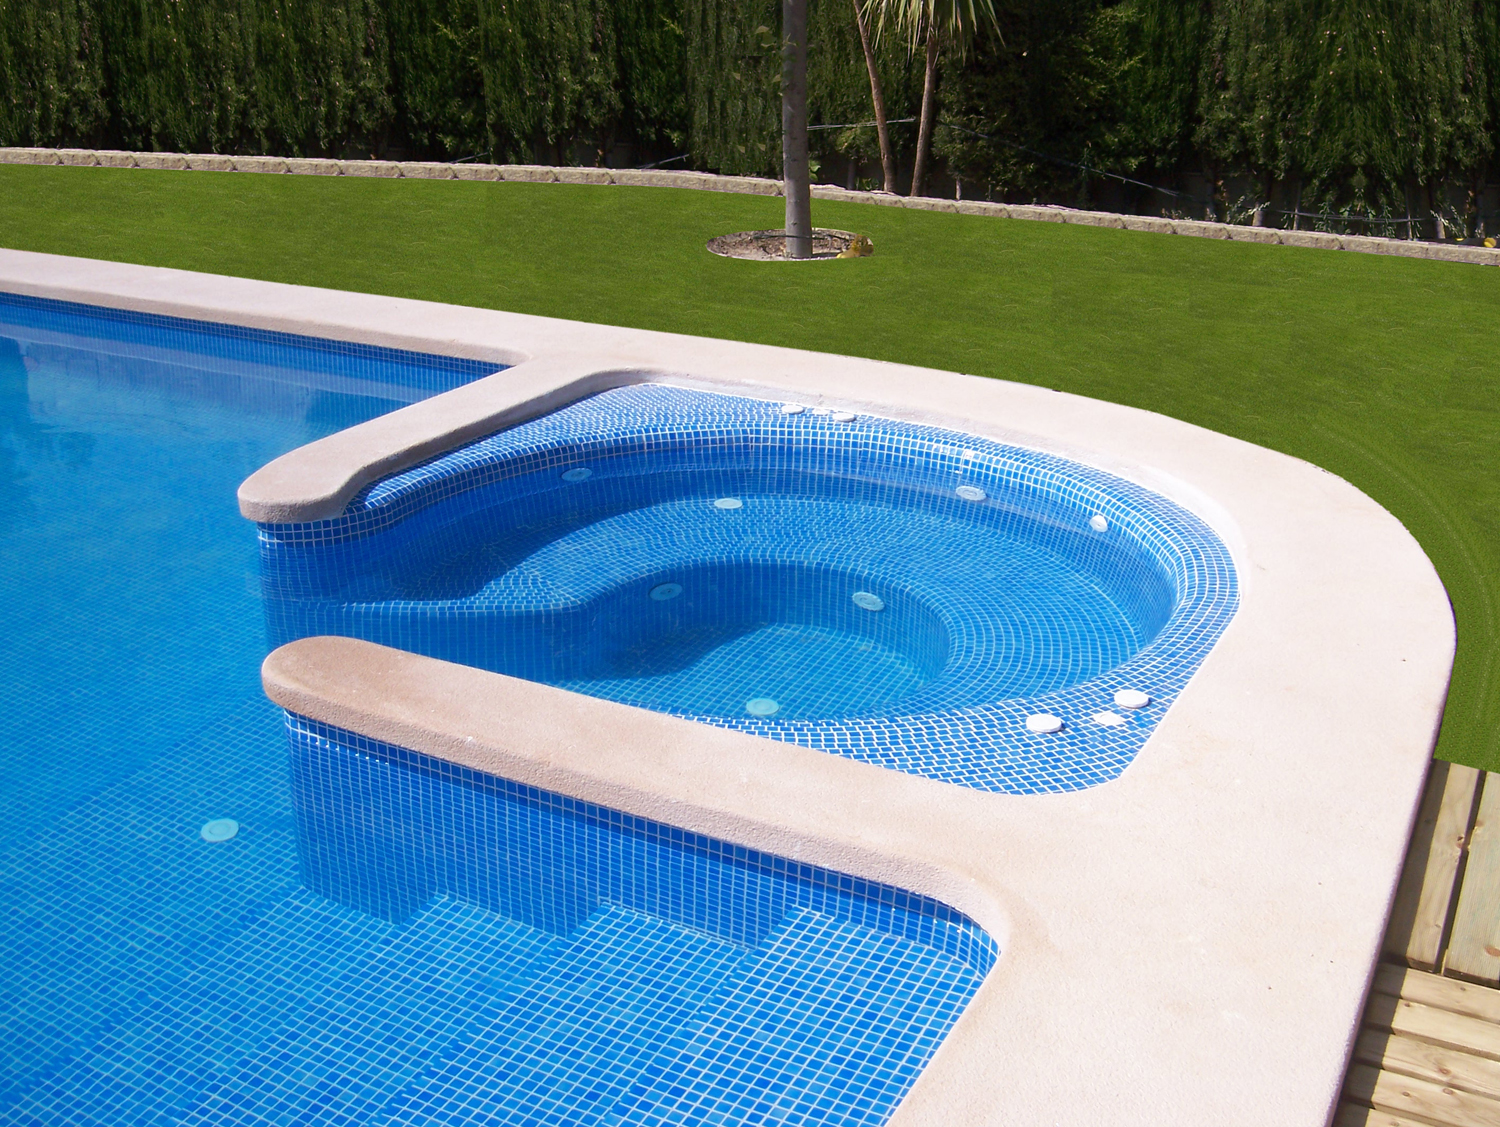 Disaher edificaci n bordes para coronaci n de piscinas for Bordes de piscina